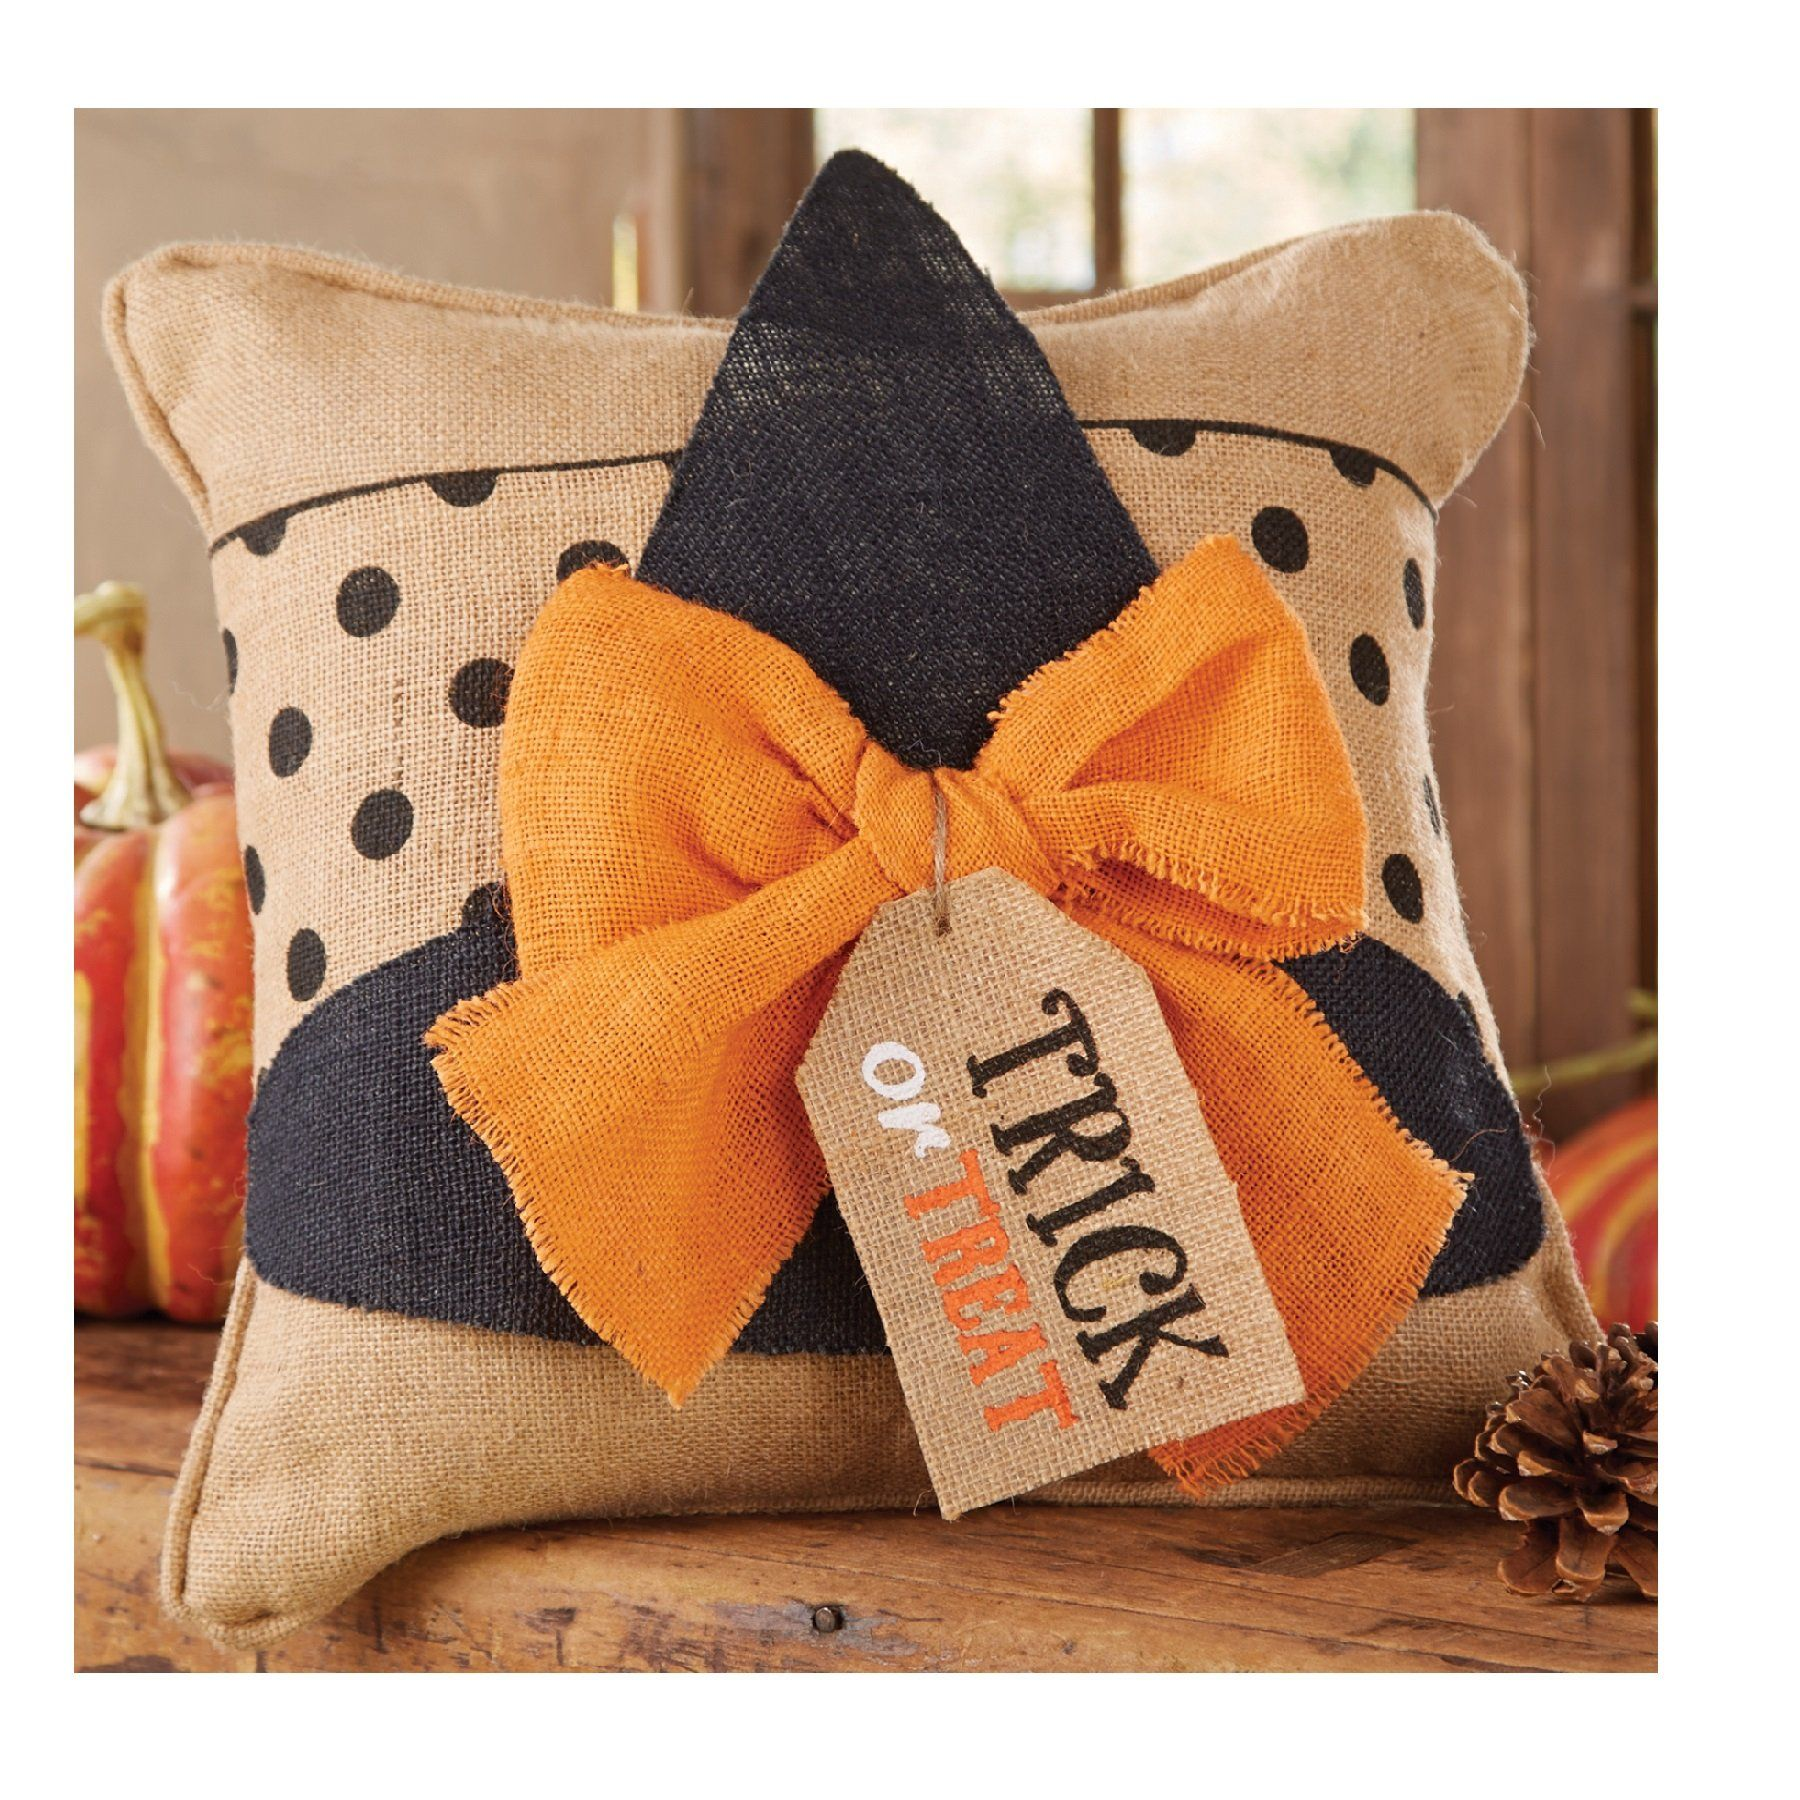 One pillow for three different holidays? This could save so much space in my tiny apt (and even smaller basement).